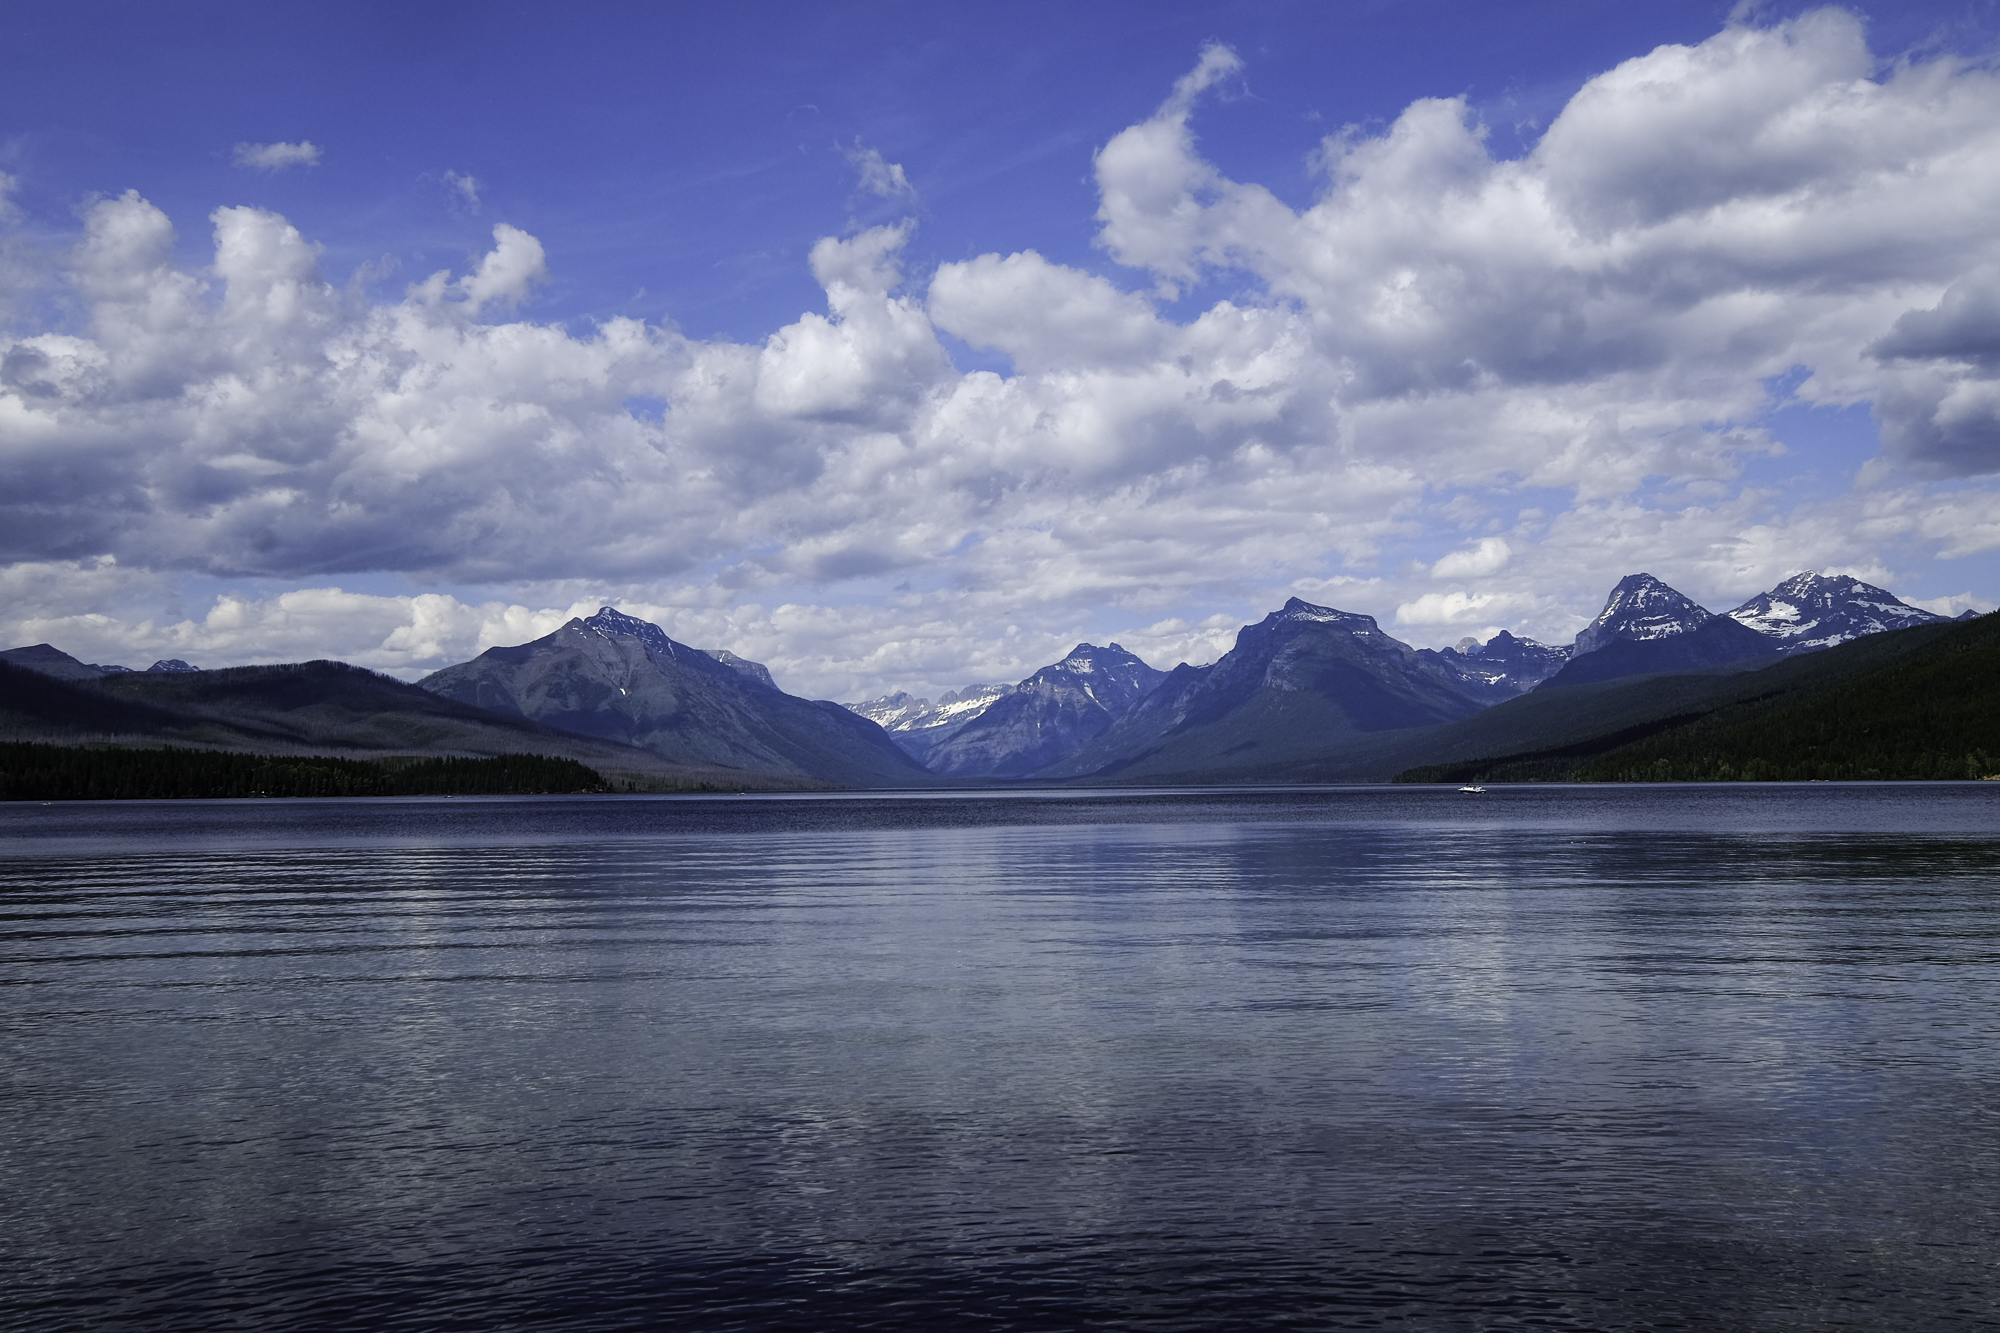 Scouting photo of Lake McDonald in  Glacier National Park .